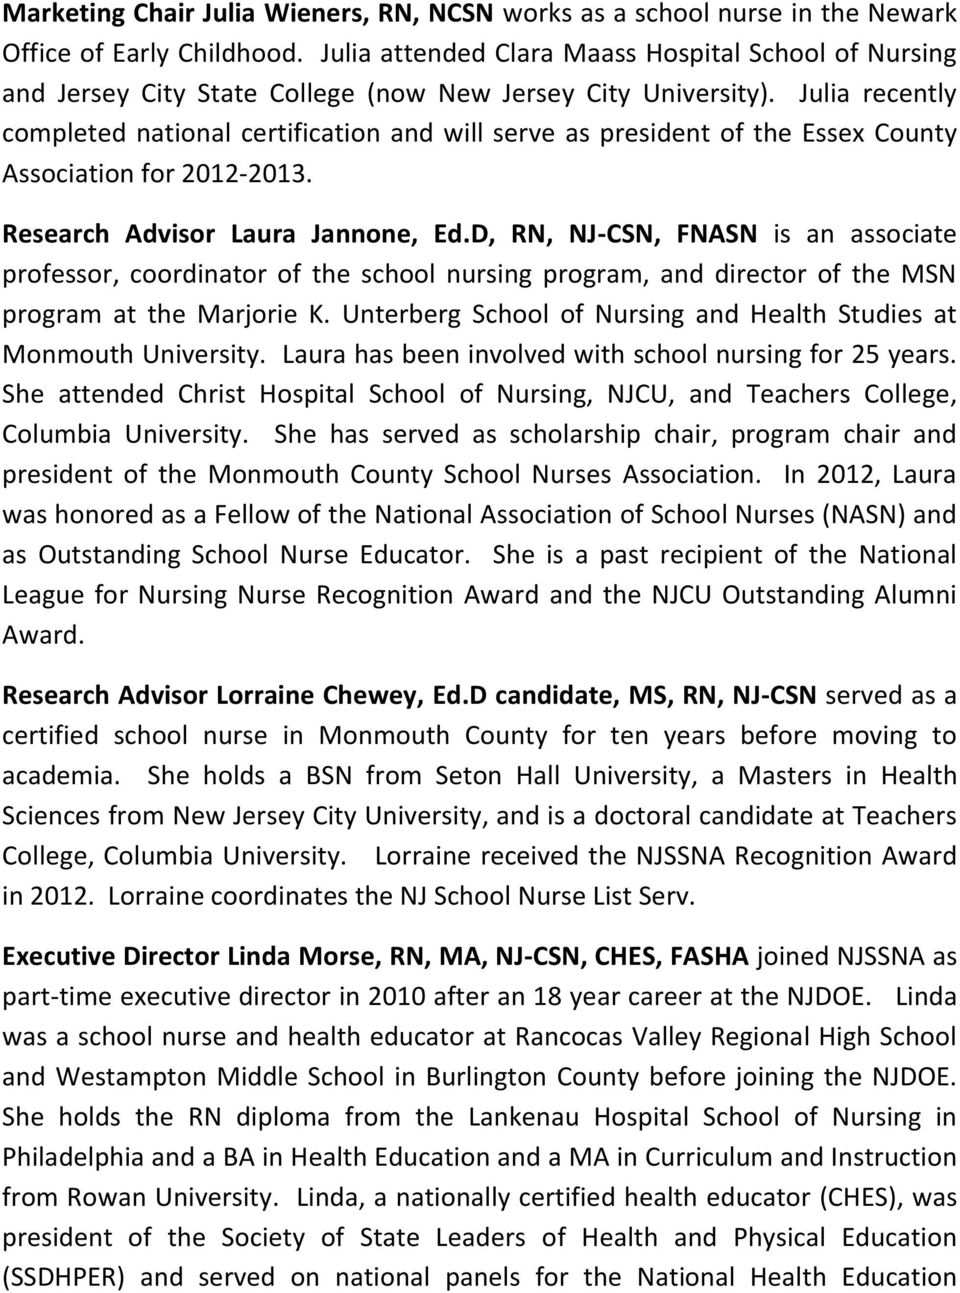 Julia recently completed national certification and will serve as president of the Essex County Association for 2012-2013. Research Advisor Laura Jannone, Ed.